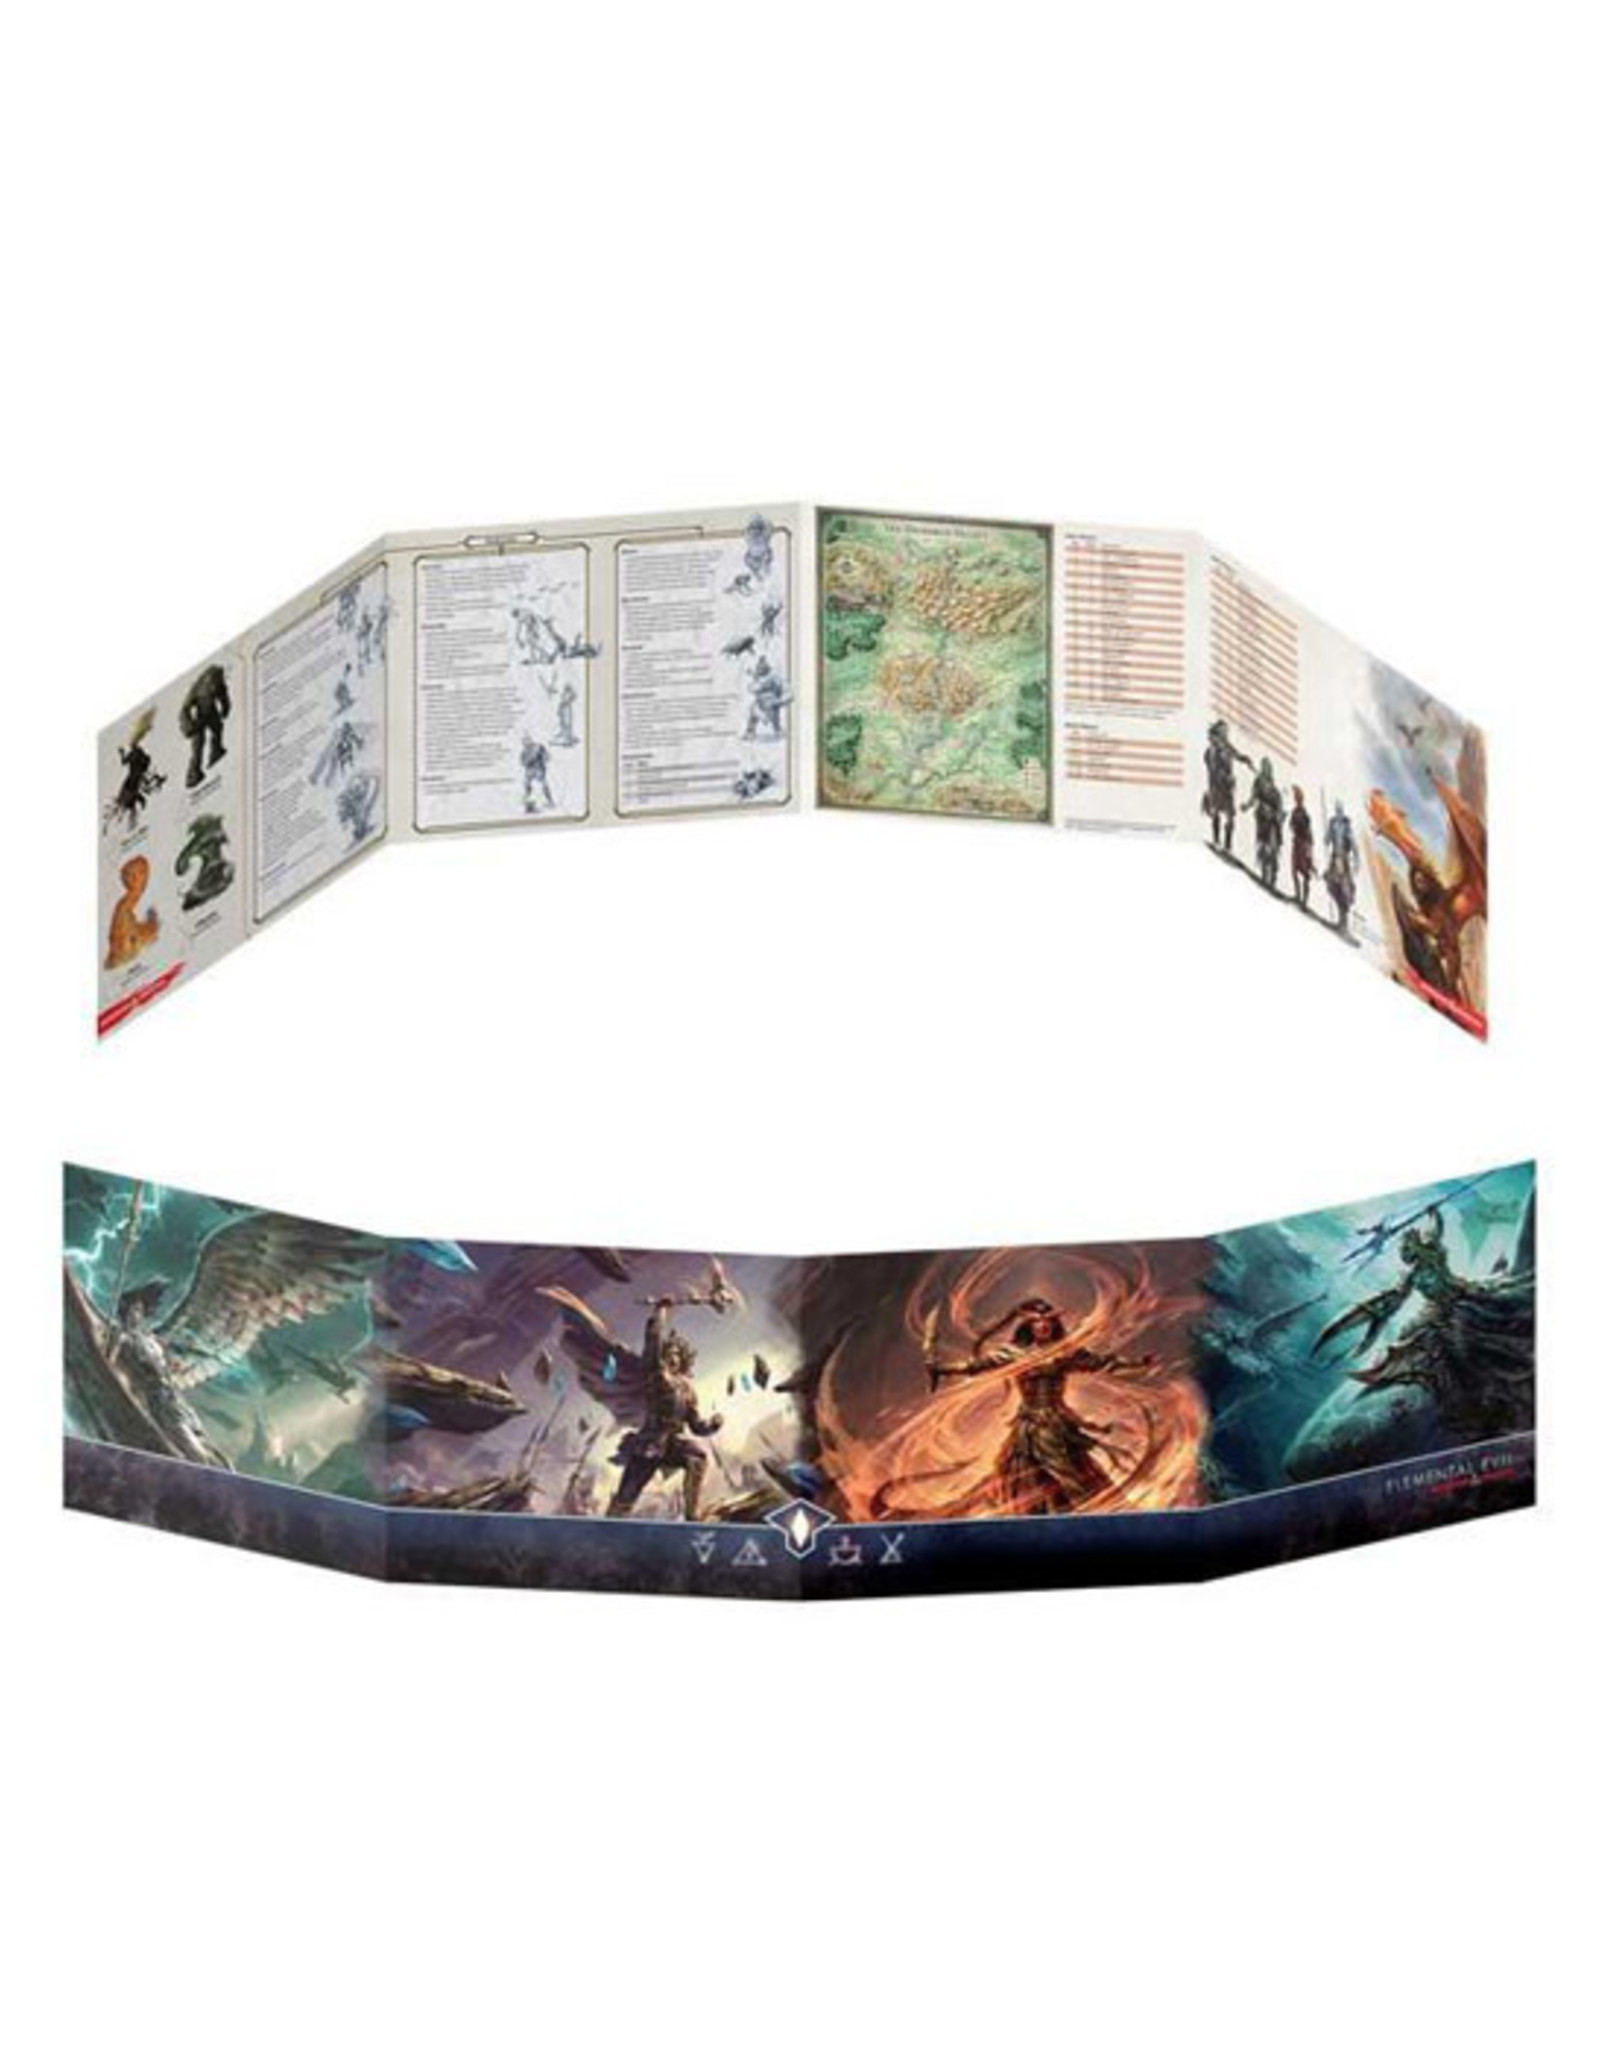 Dungeons & Dragons Dungeons & Dragons: 5th Edition - Dungeon Master's Screen - Elemental Evil